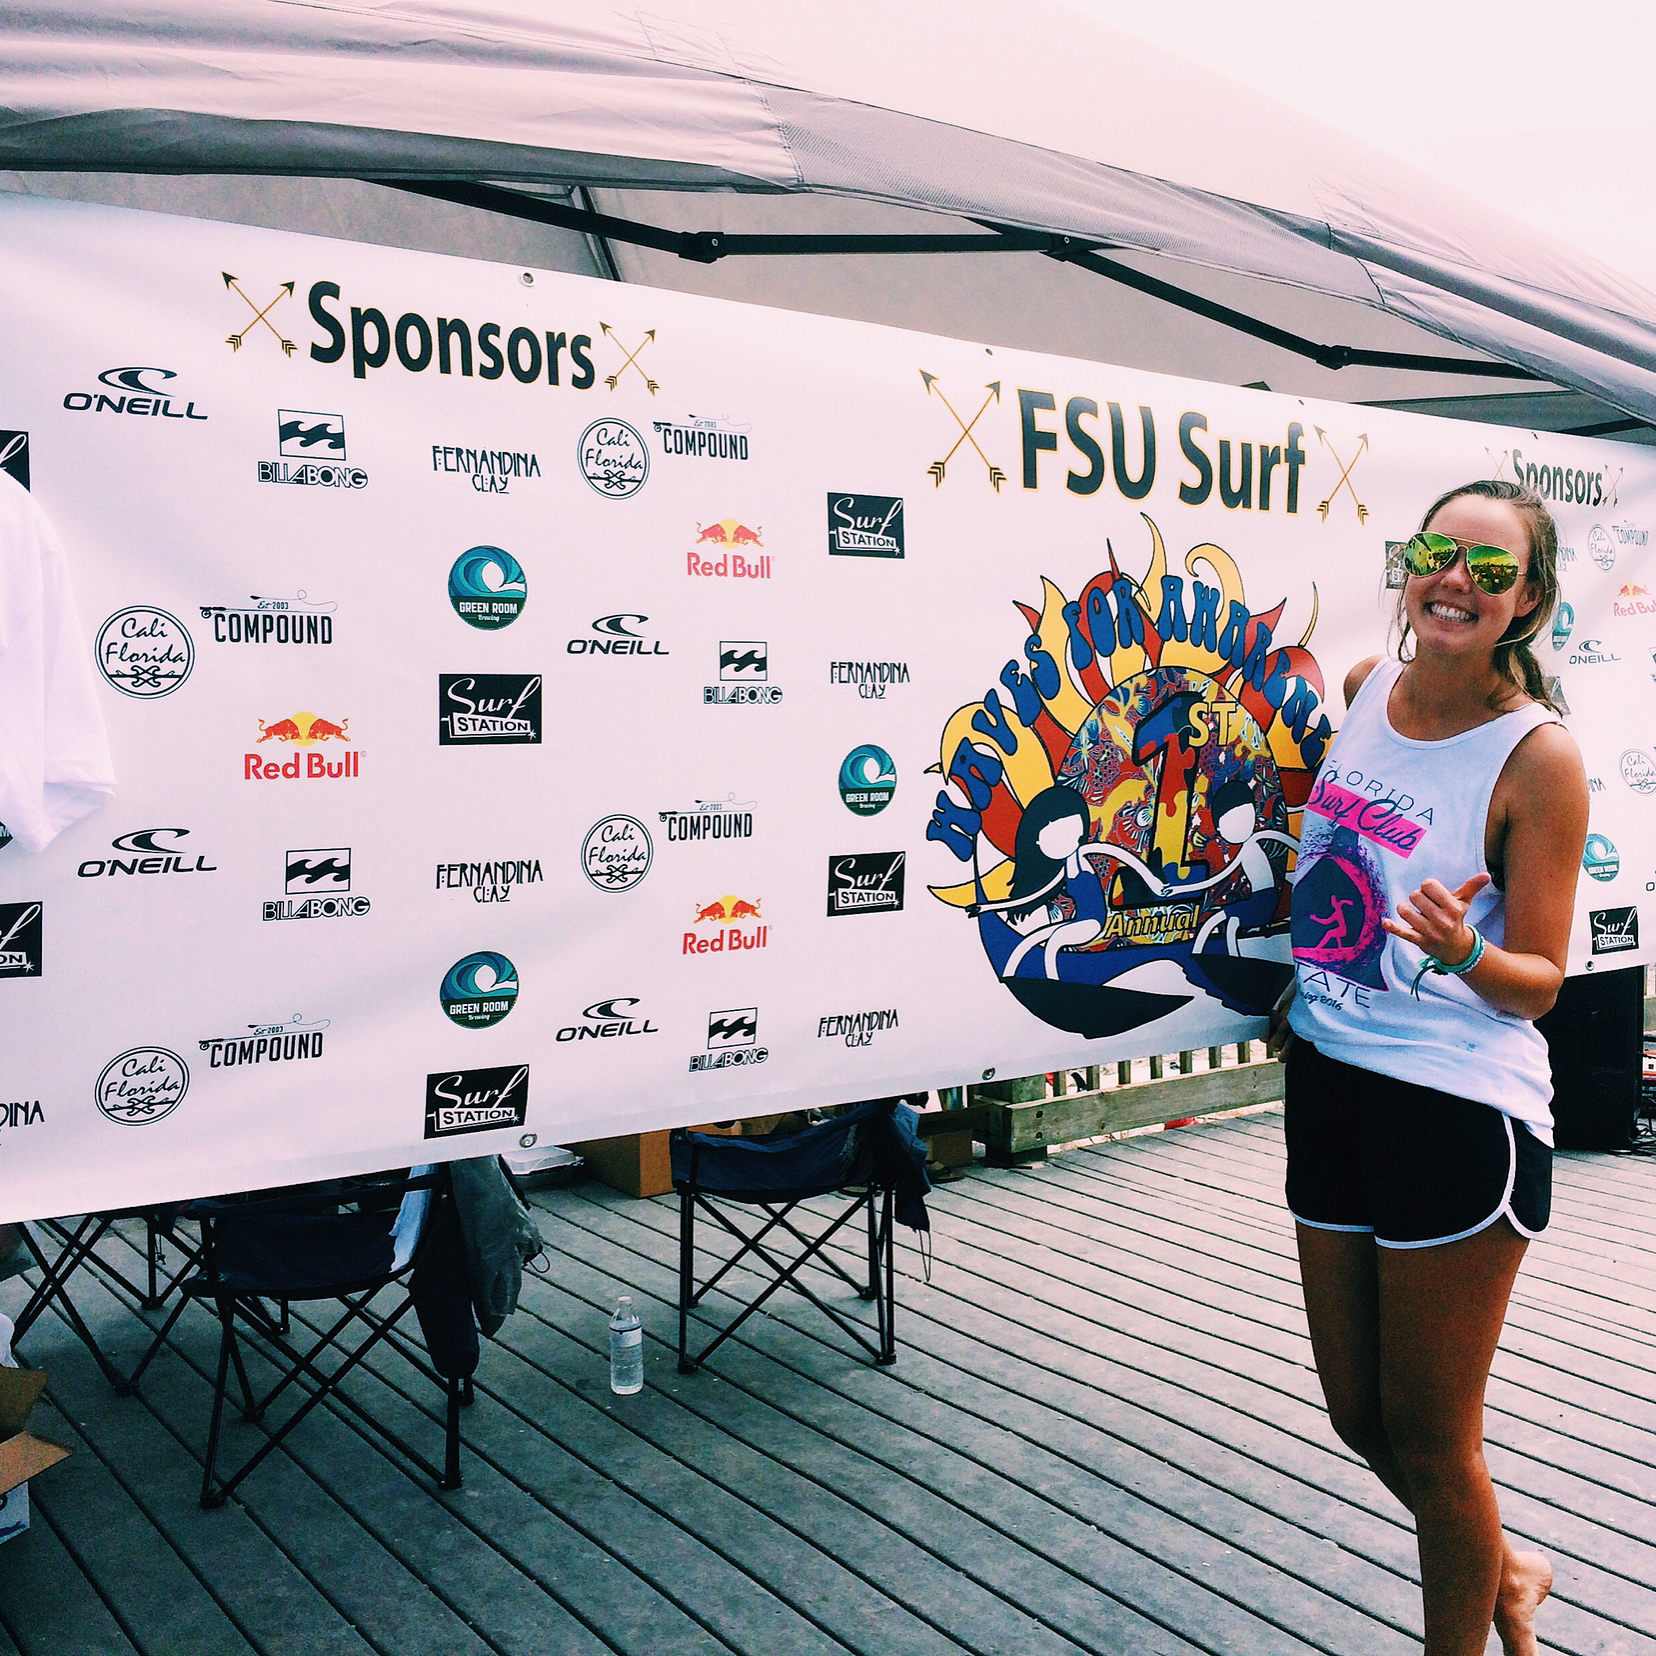 Our sister Emily Repka was nominated as FSU Surf club's